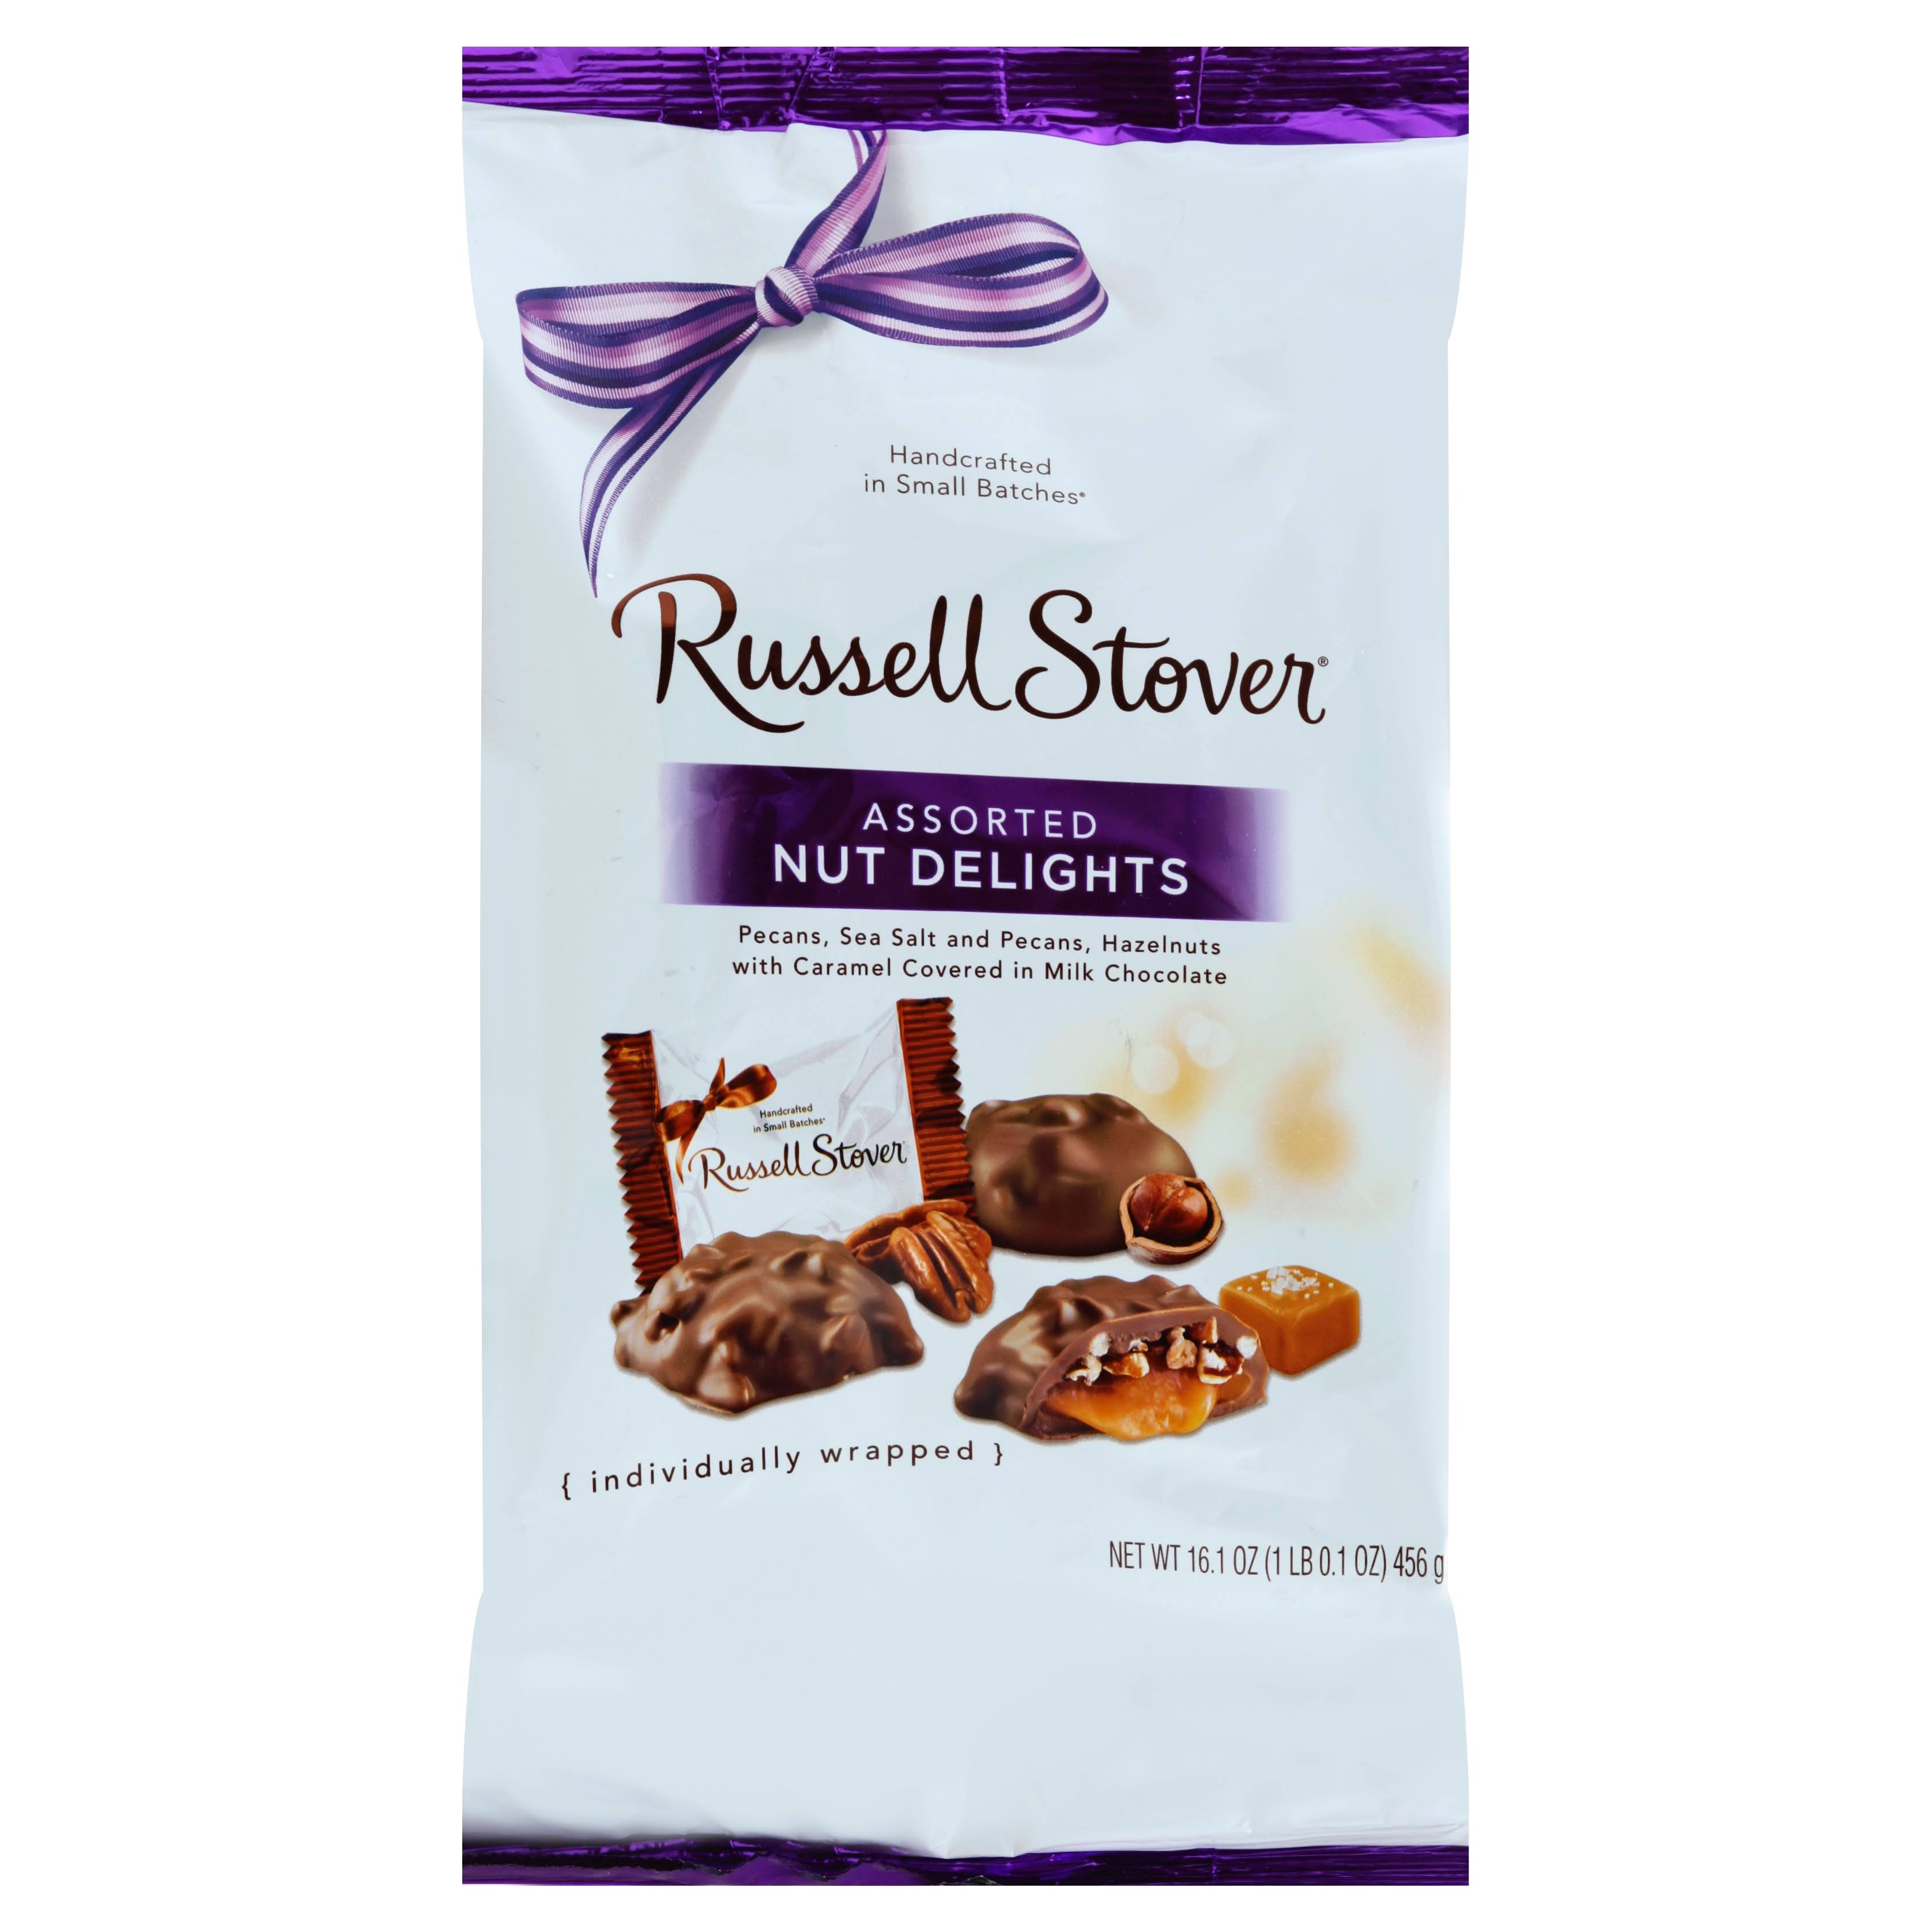 Russell Stover Nut Delights, Assorted - 16.1 oz